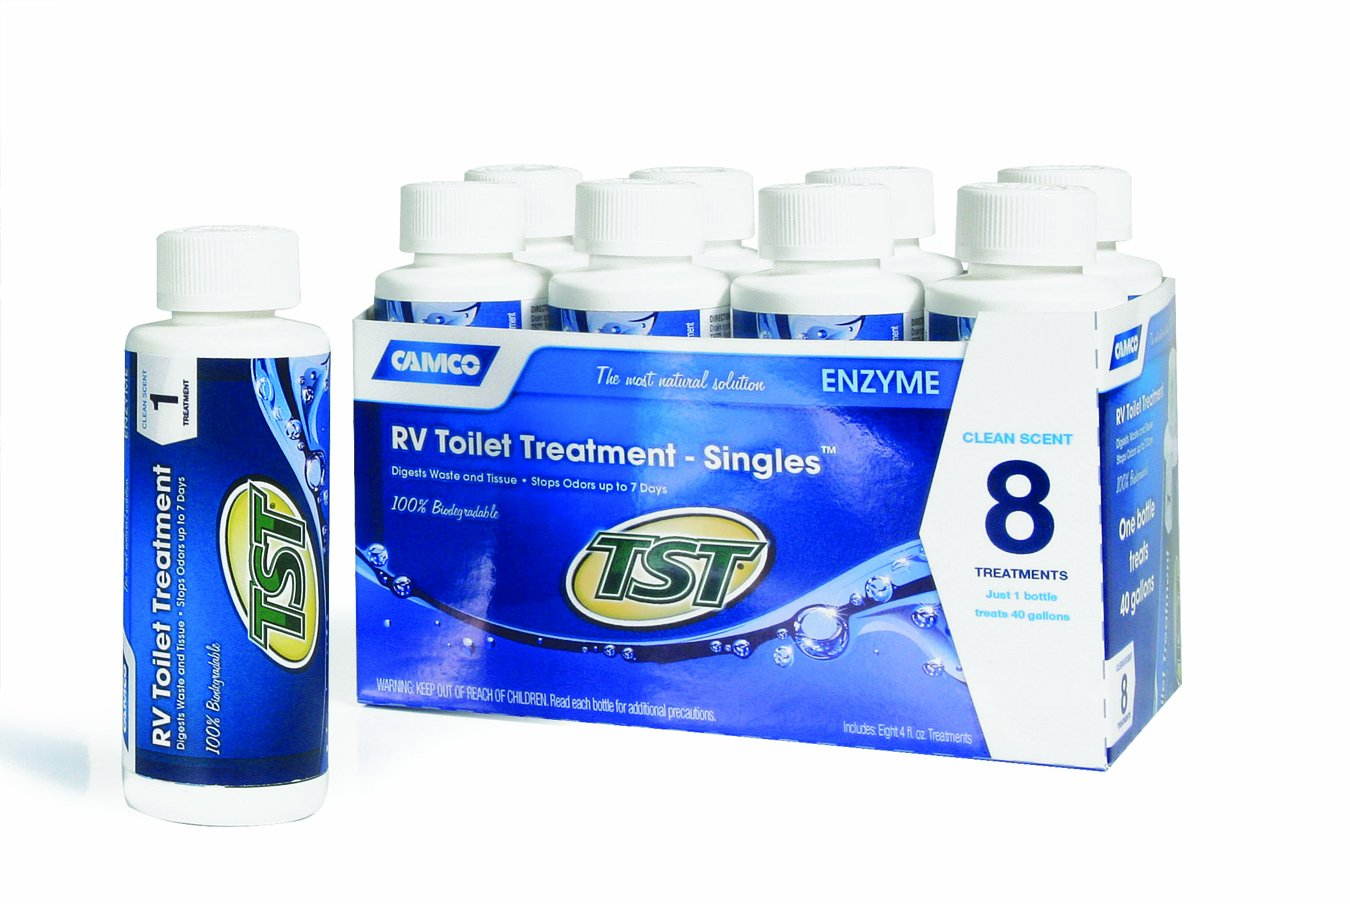 Camco TST Clean Scent RV Toilet Treatment, Formaldehyde Free, Breaks Down Waste And Tissue, Septic Tank Safe, Treats up to 8-40 Gallon Holding Tanks (8-pack of 4 ounce singles)